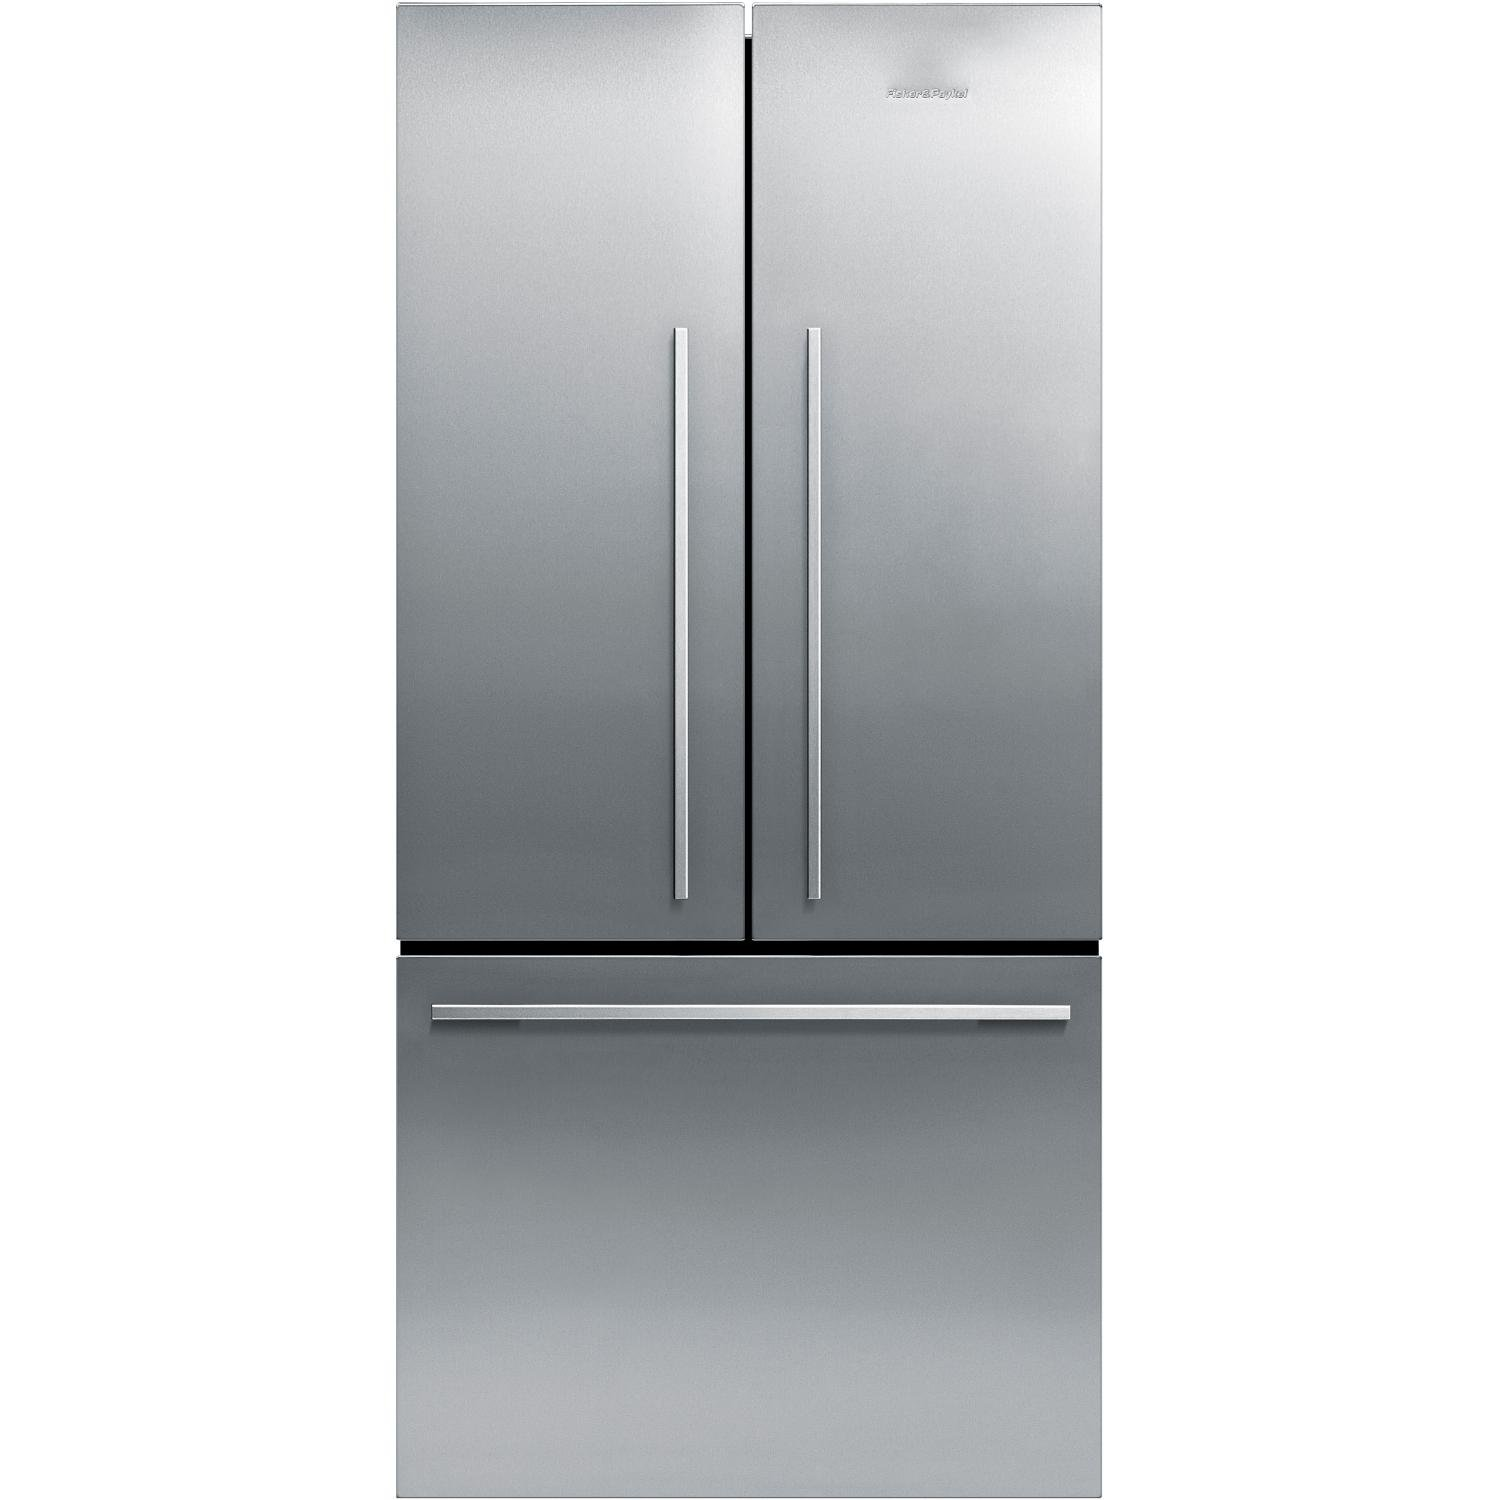 Top 10 Best French Door Refrigerator Reviews in 2020 6